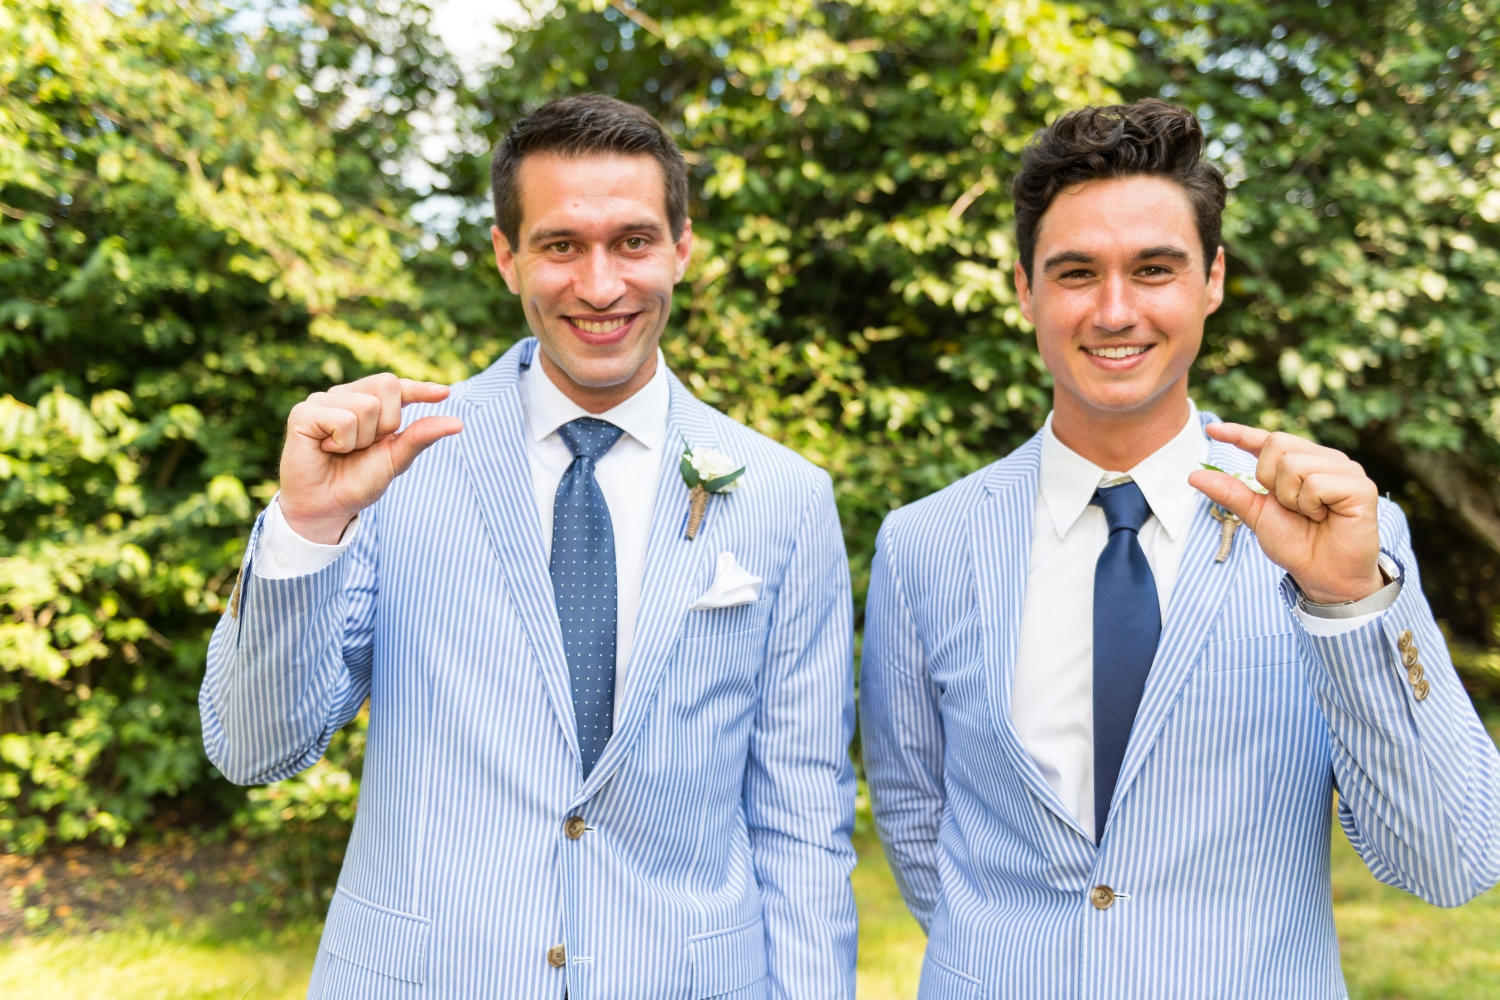 groomsmen-having-fun-groom-best-man